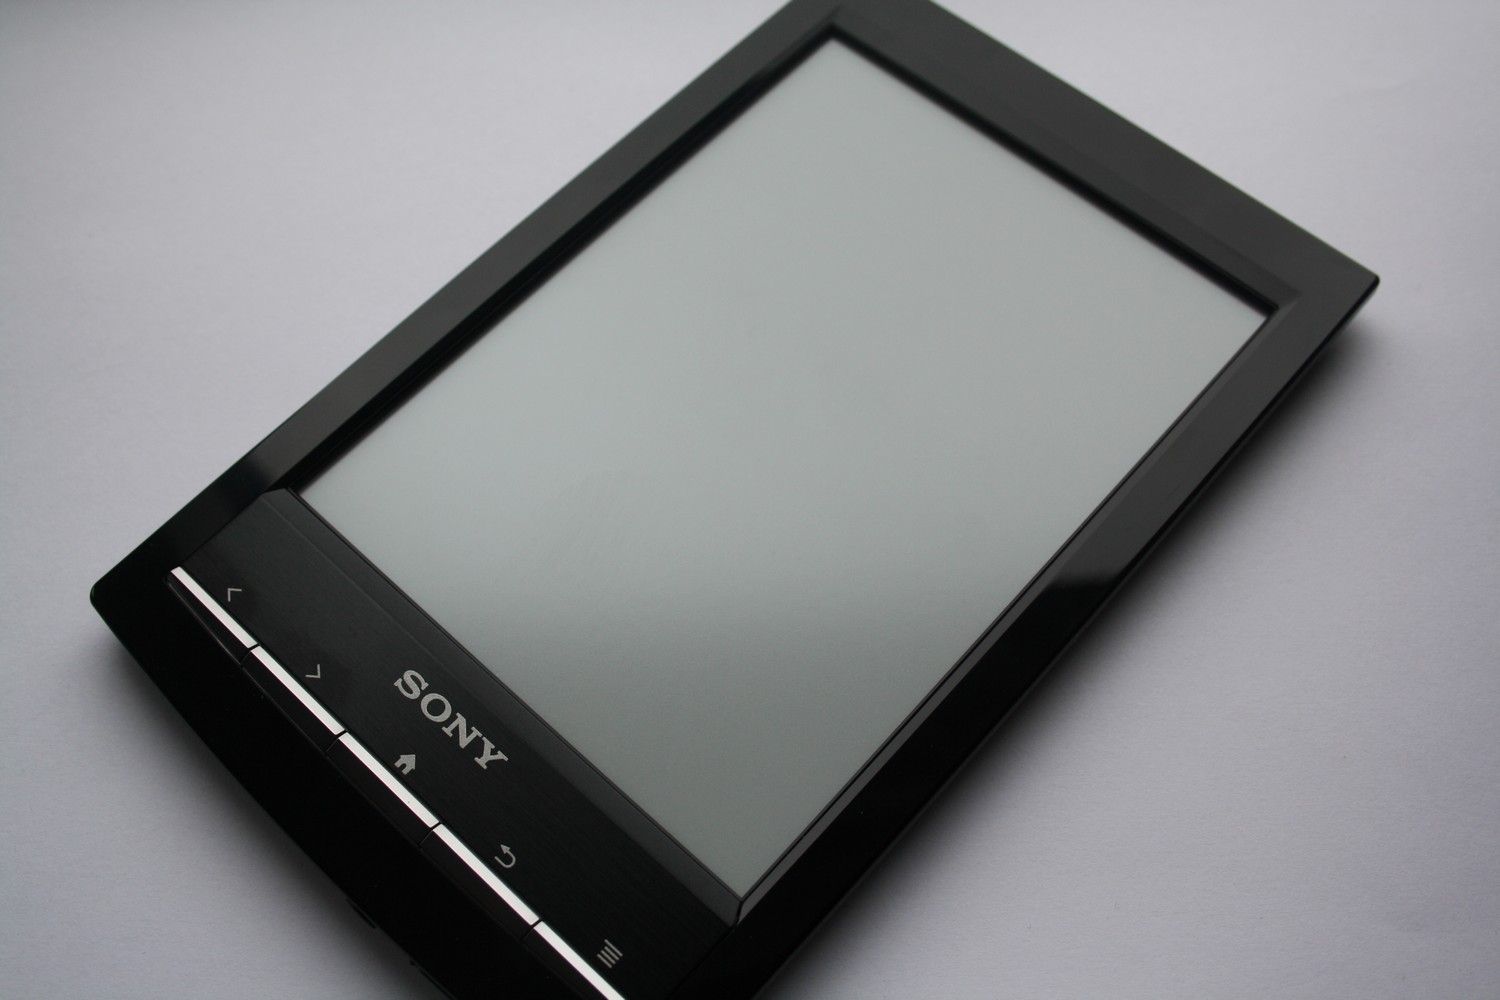 Libro Electronico Sony Prs T1 Januari 2012 A1001addictions Pagina 2